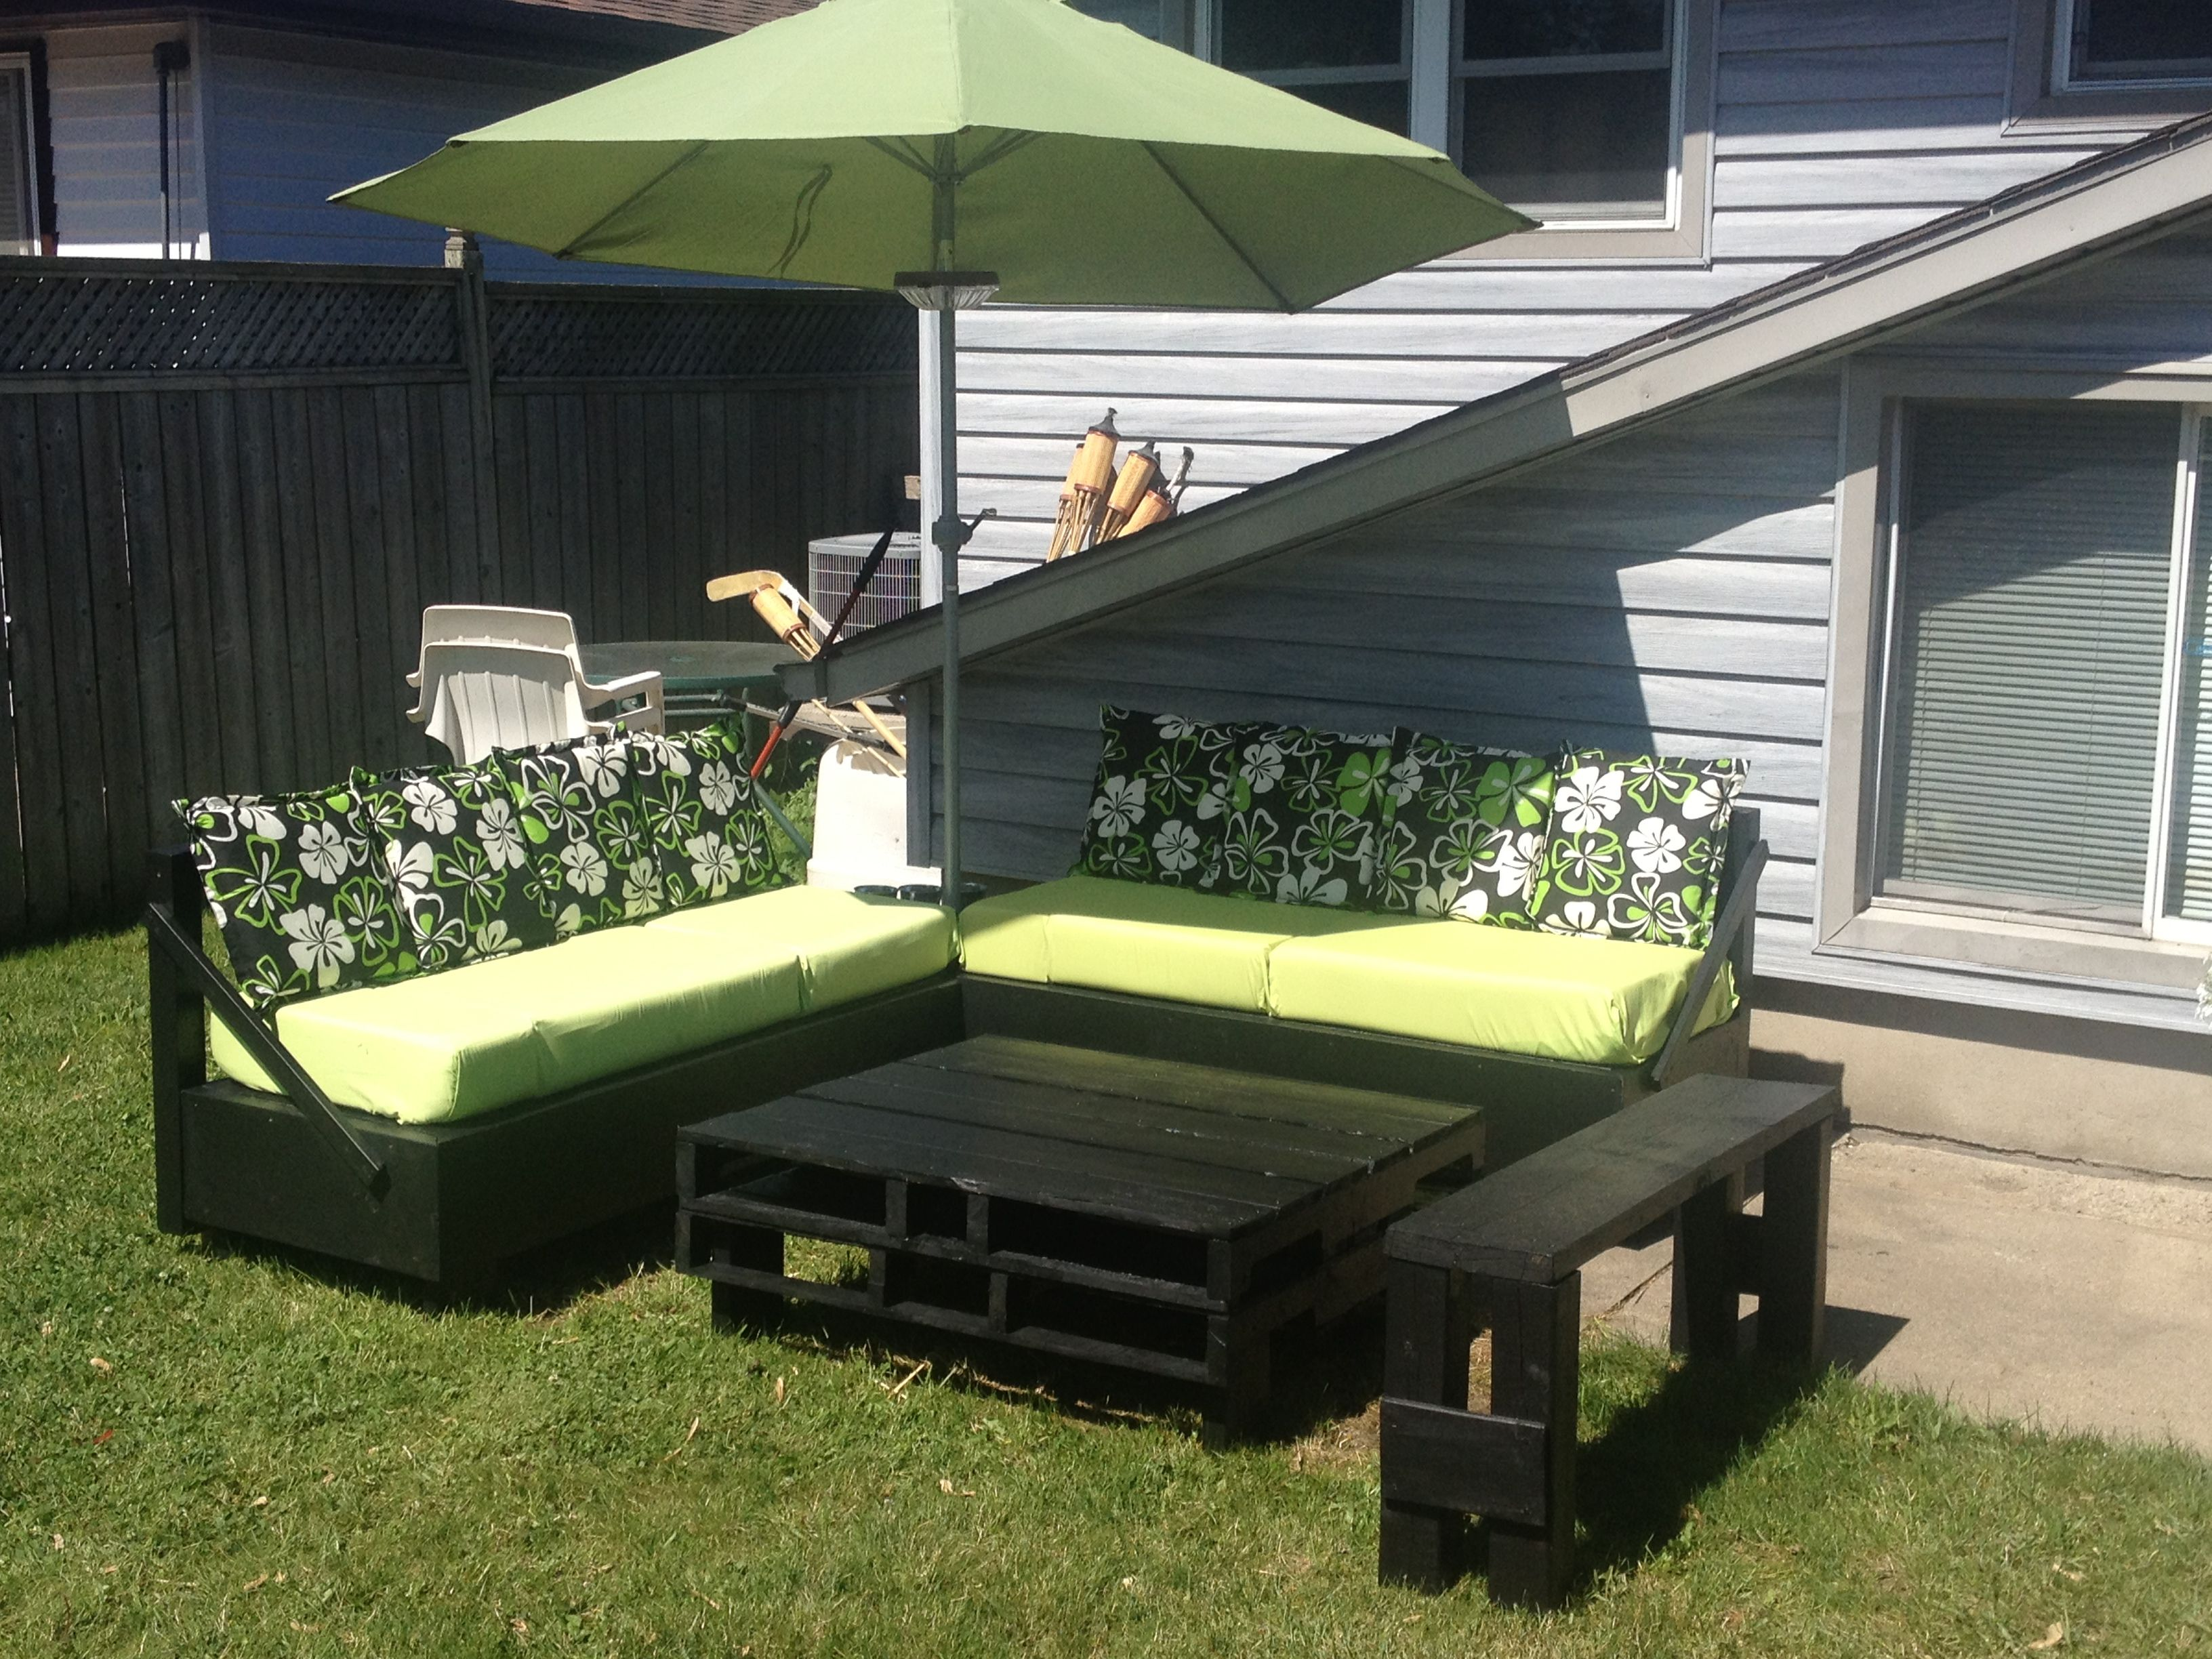 Pallet patio furniture cushions - Homemade Patio Furniture My Husband And I Made A Lot Of Work But Well